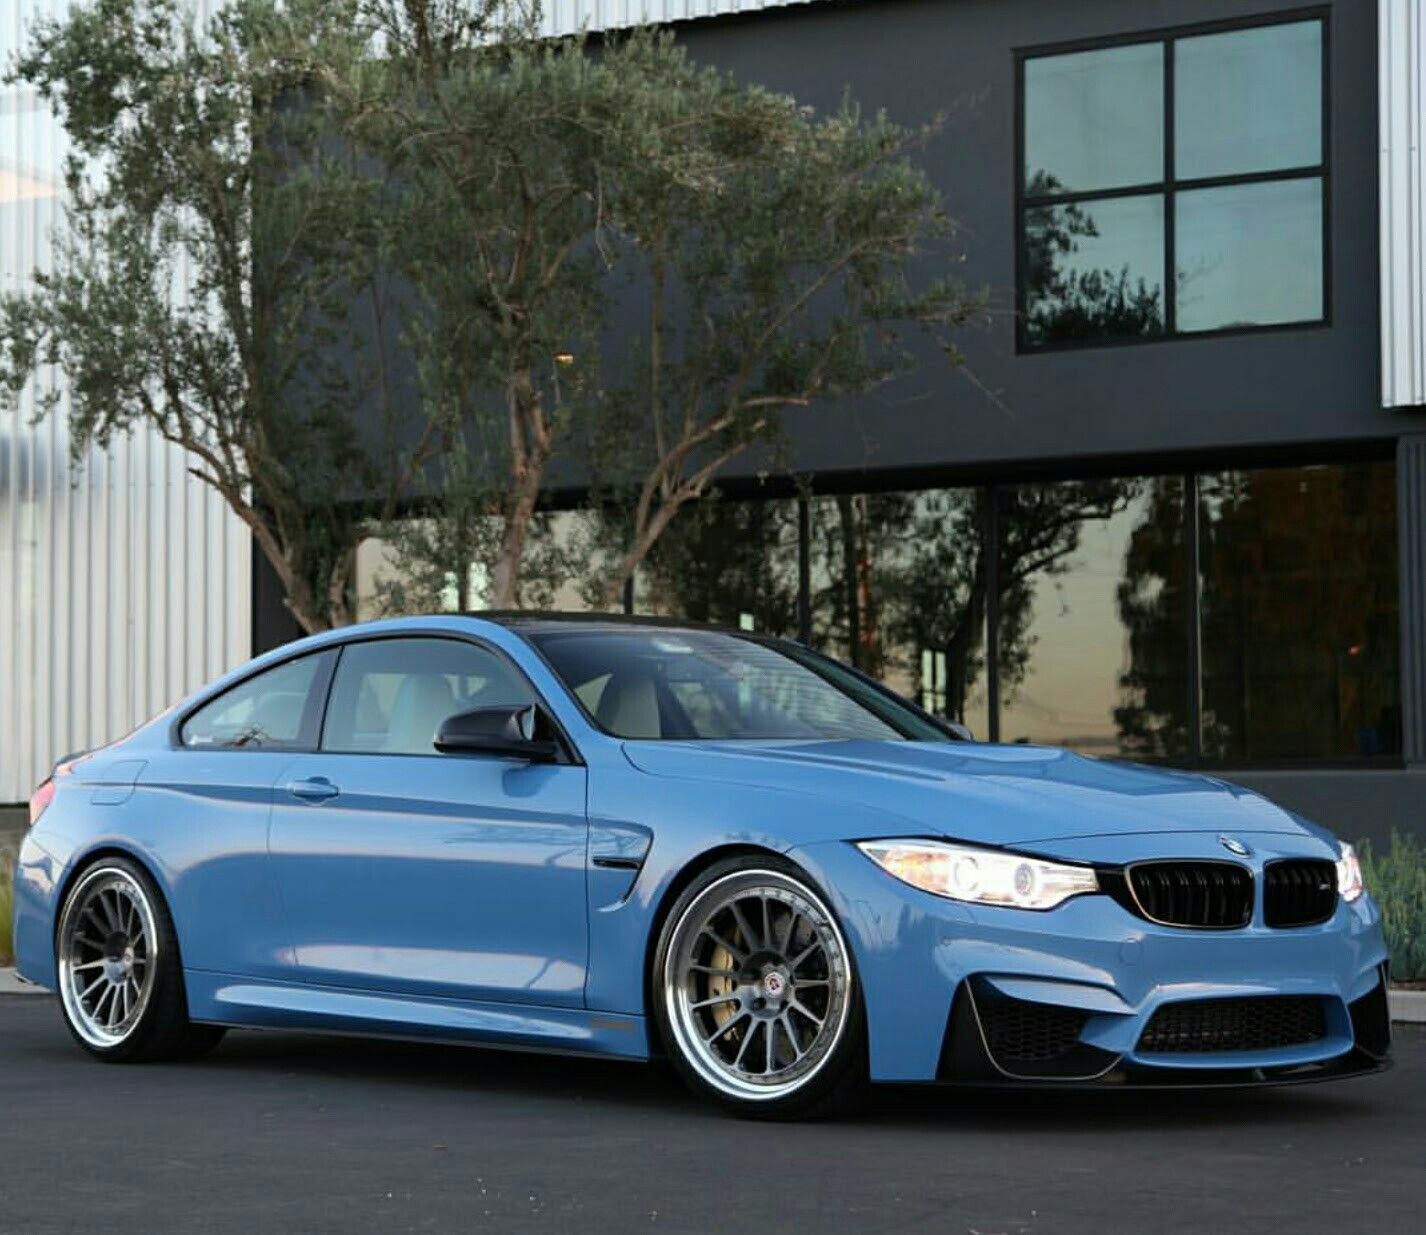 Pin By Cody Simmons On AUTOS MOTOS Pinterest BMW Cars And - Bmw cool car